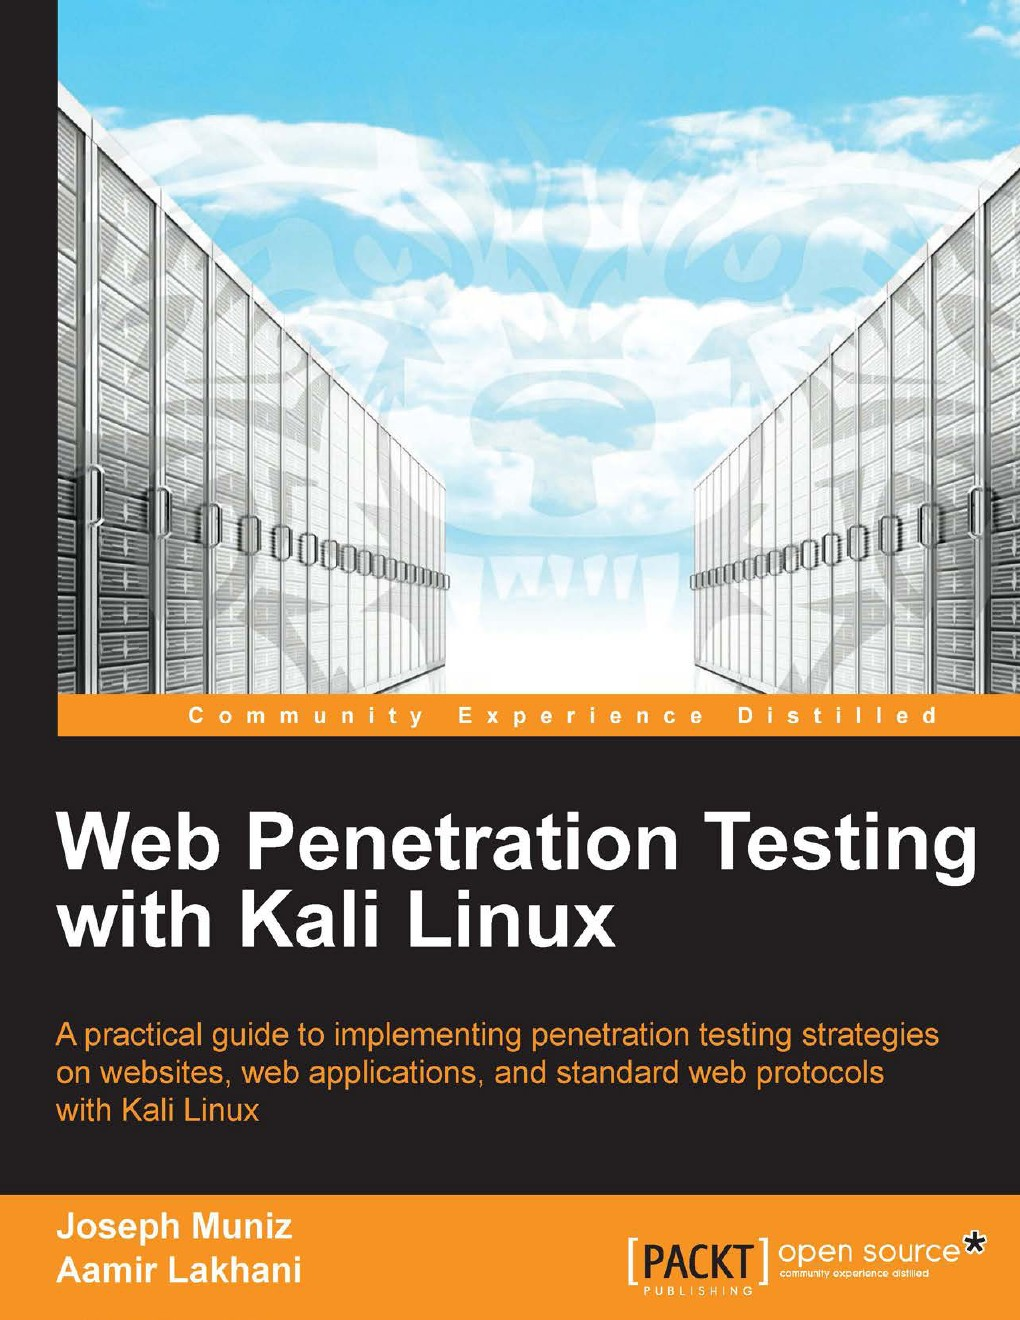 web-penetration-testing-with-kali-linux-2013-joseph-munizwww-ebook-dl-com_large